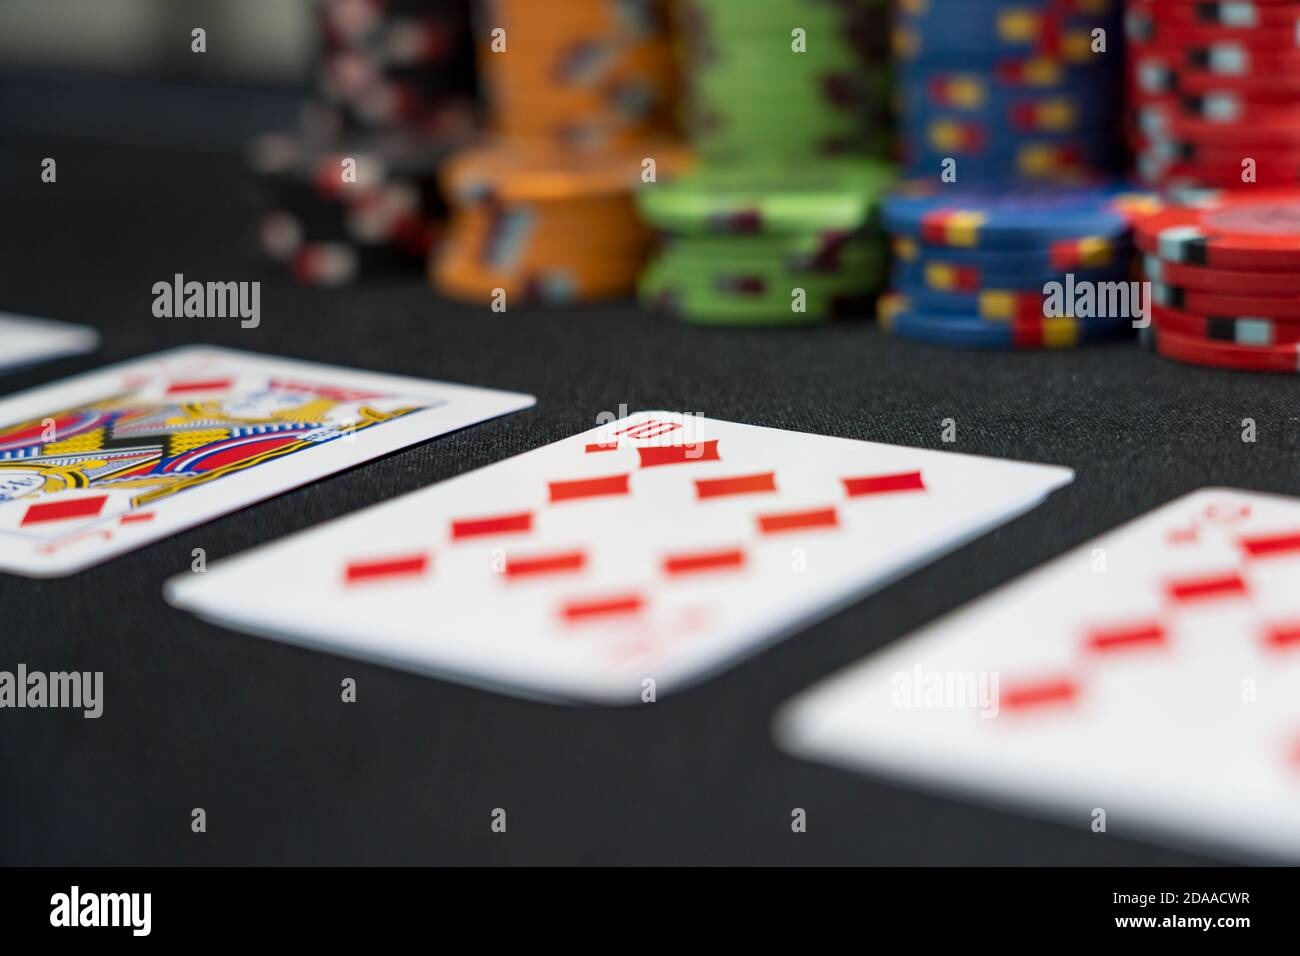 Playing Cards Table High Resolution Stock Photography And Images Page 5 Alamy